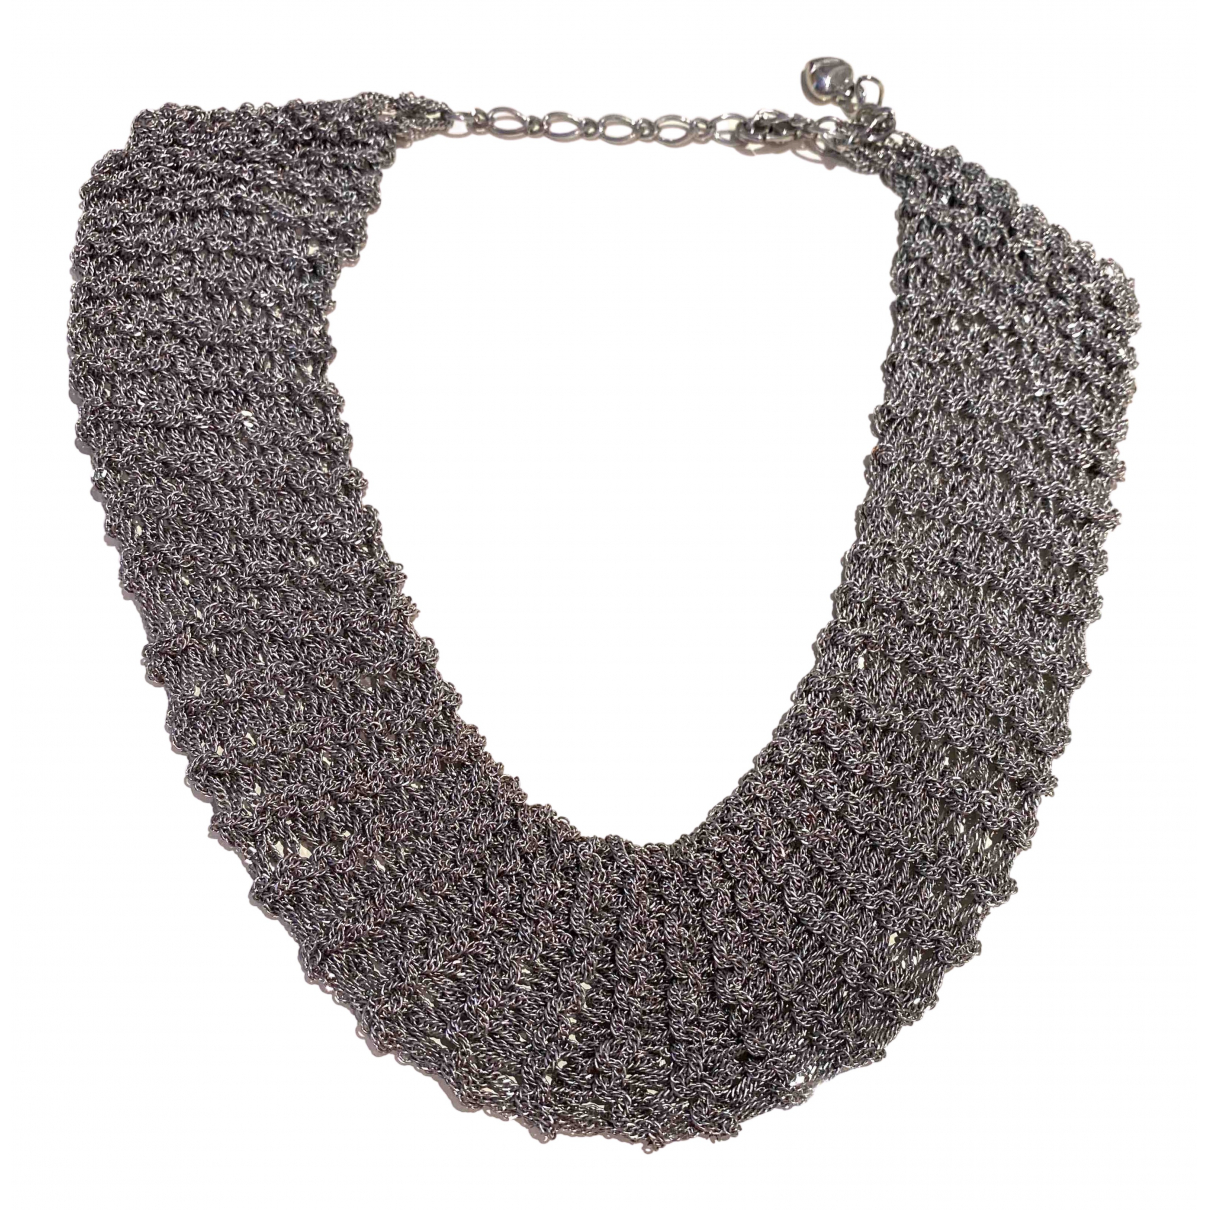 Tophop Boutique \N Kette in  Silber Metall